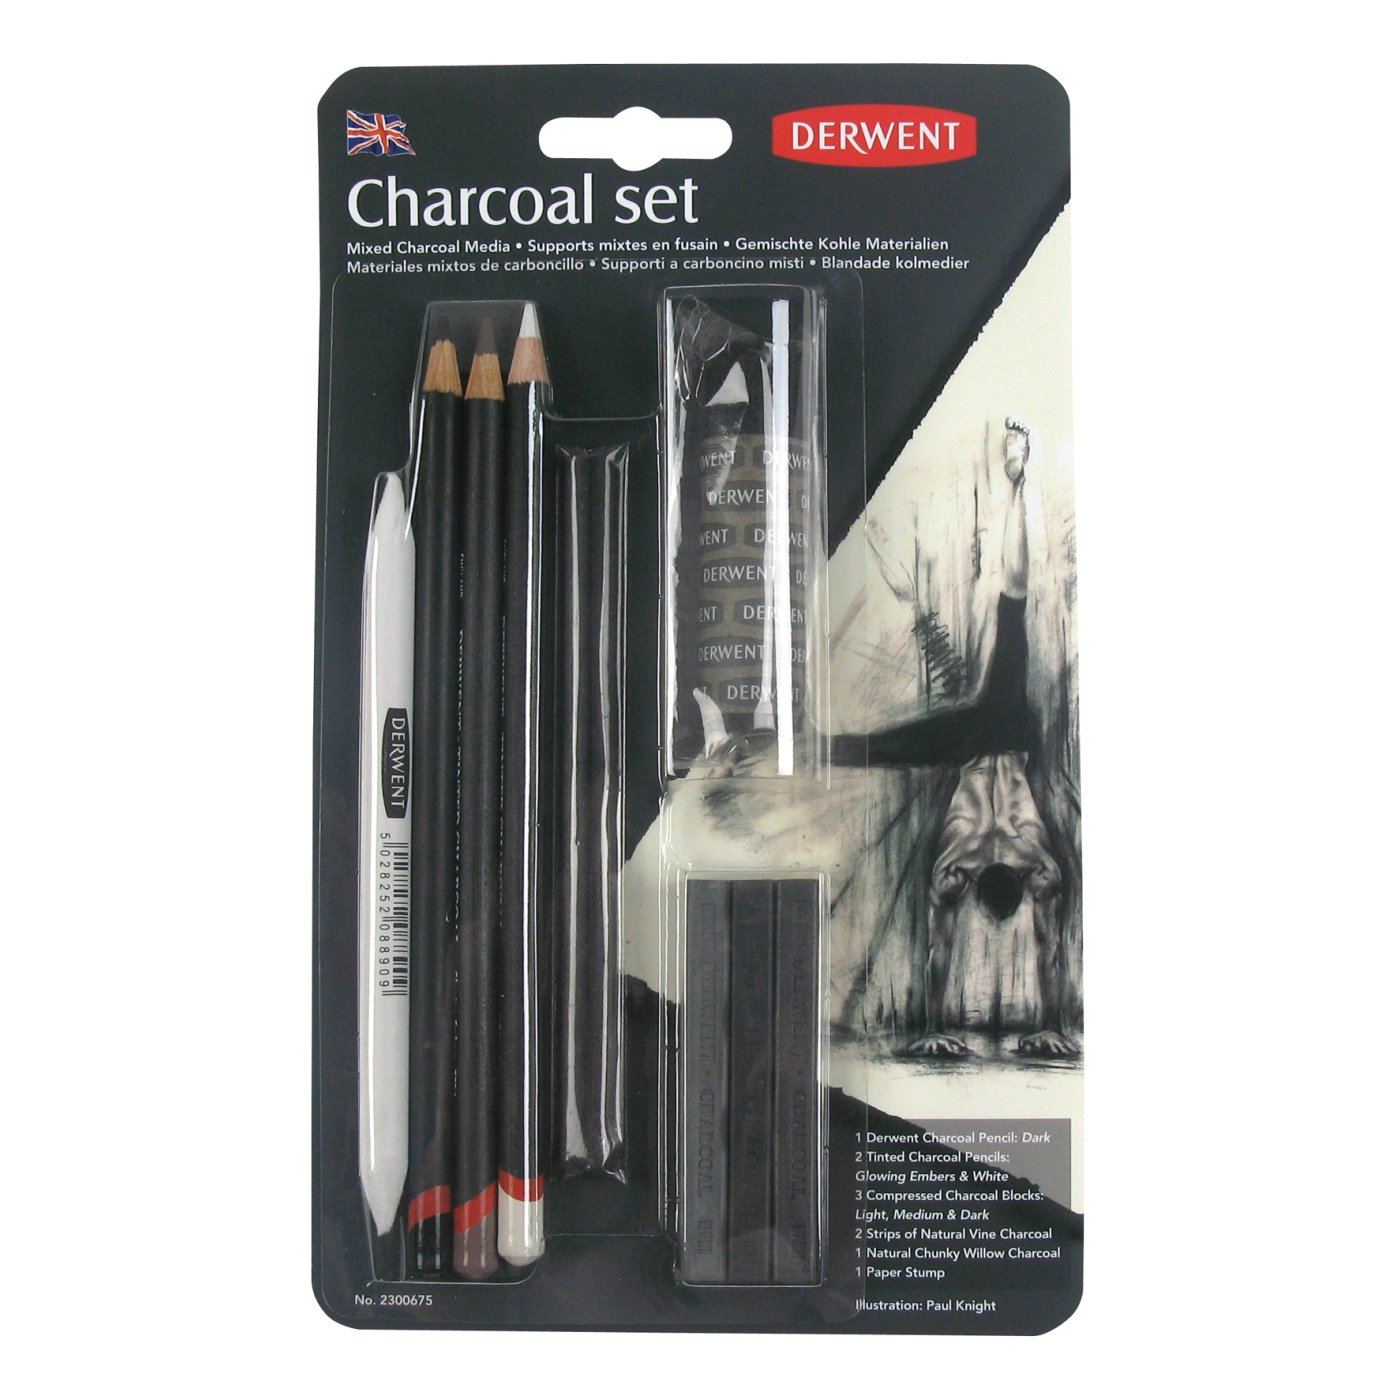 Derwent charcoal collection pack 10 count